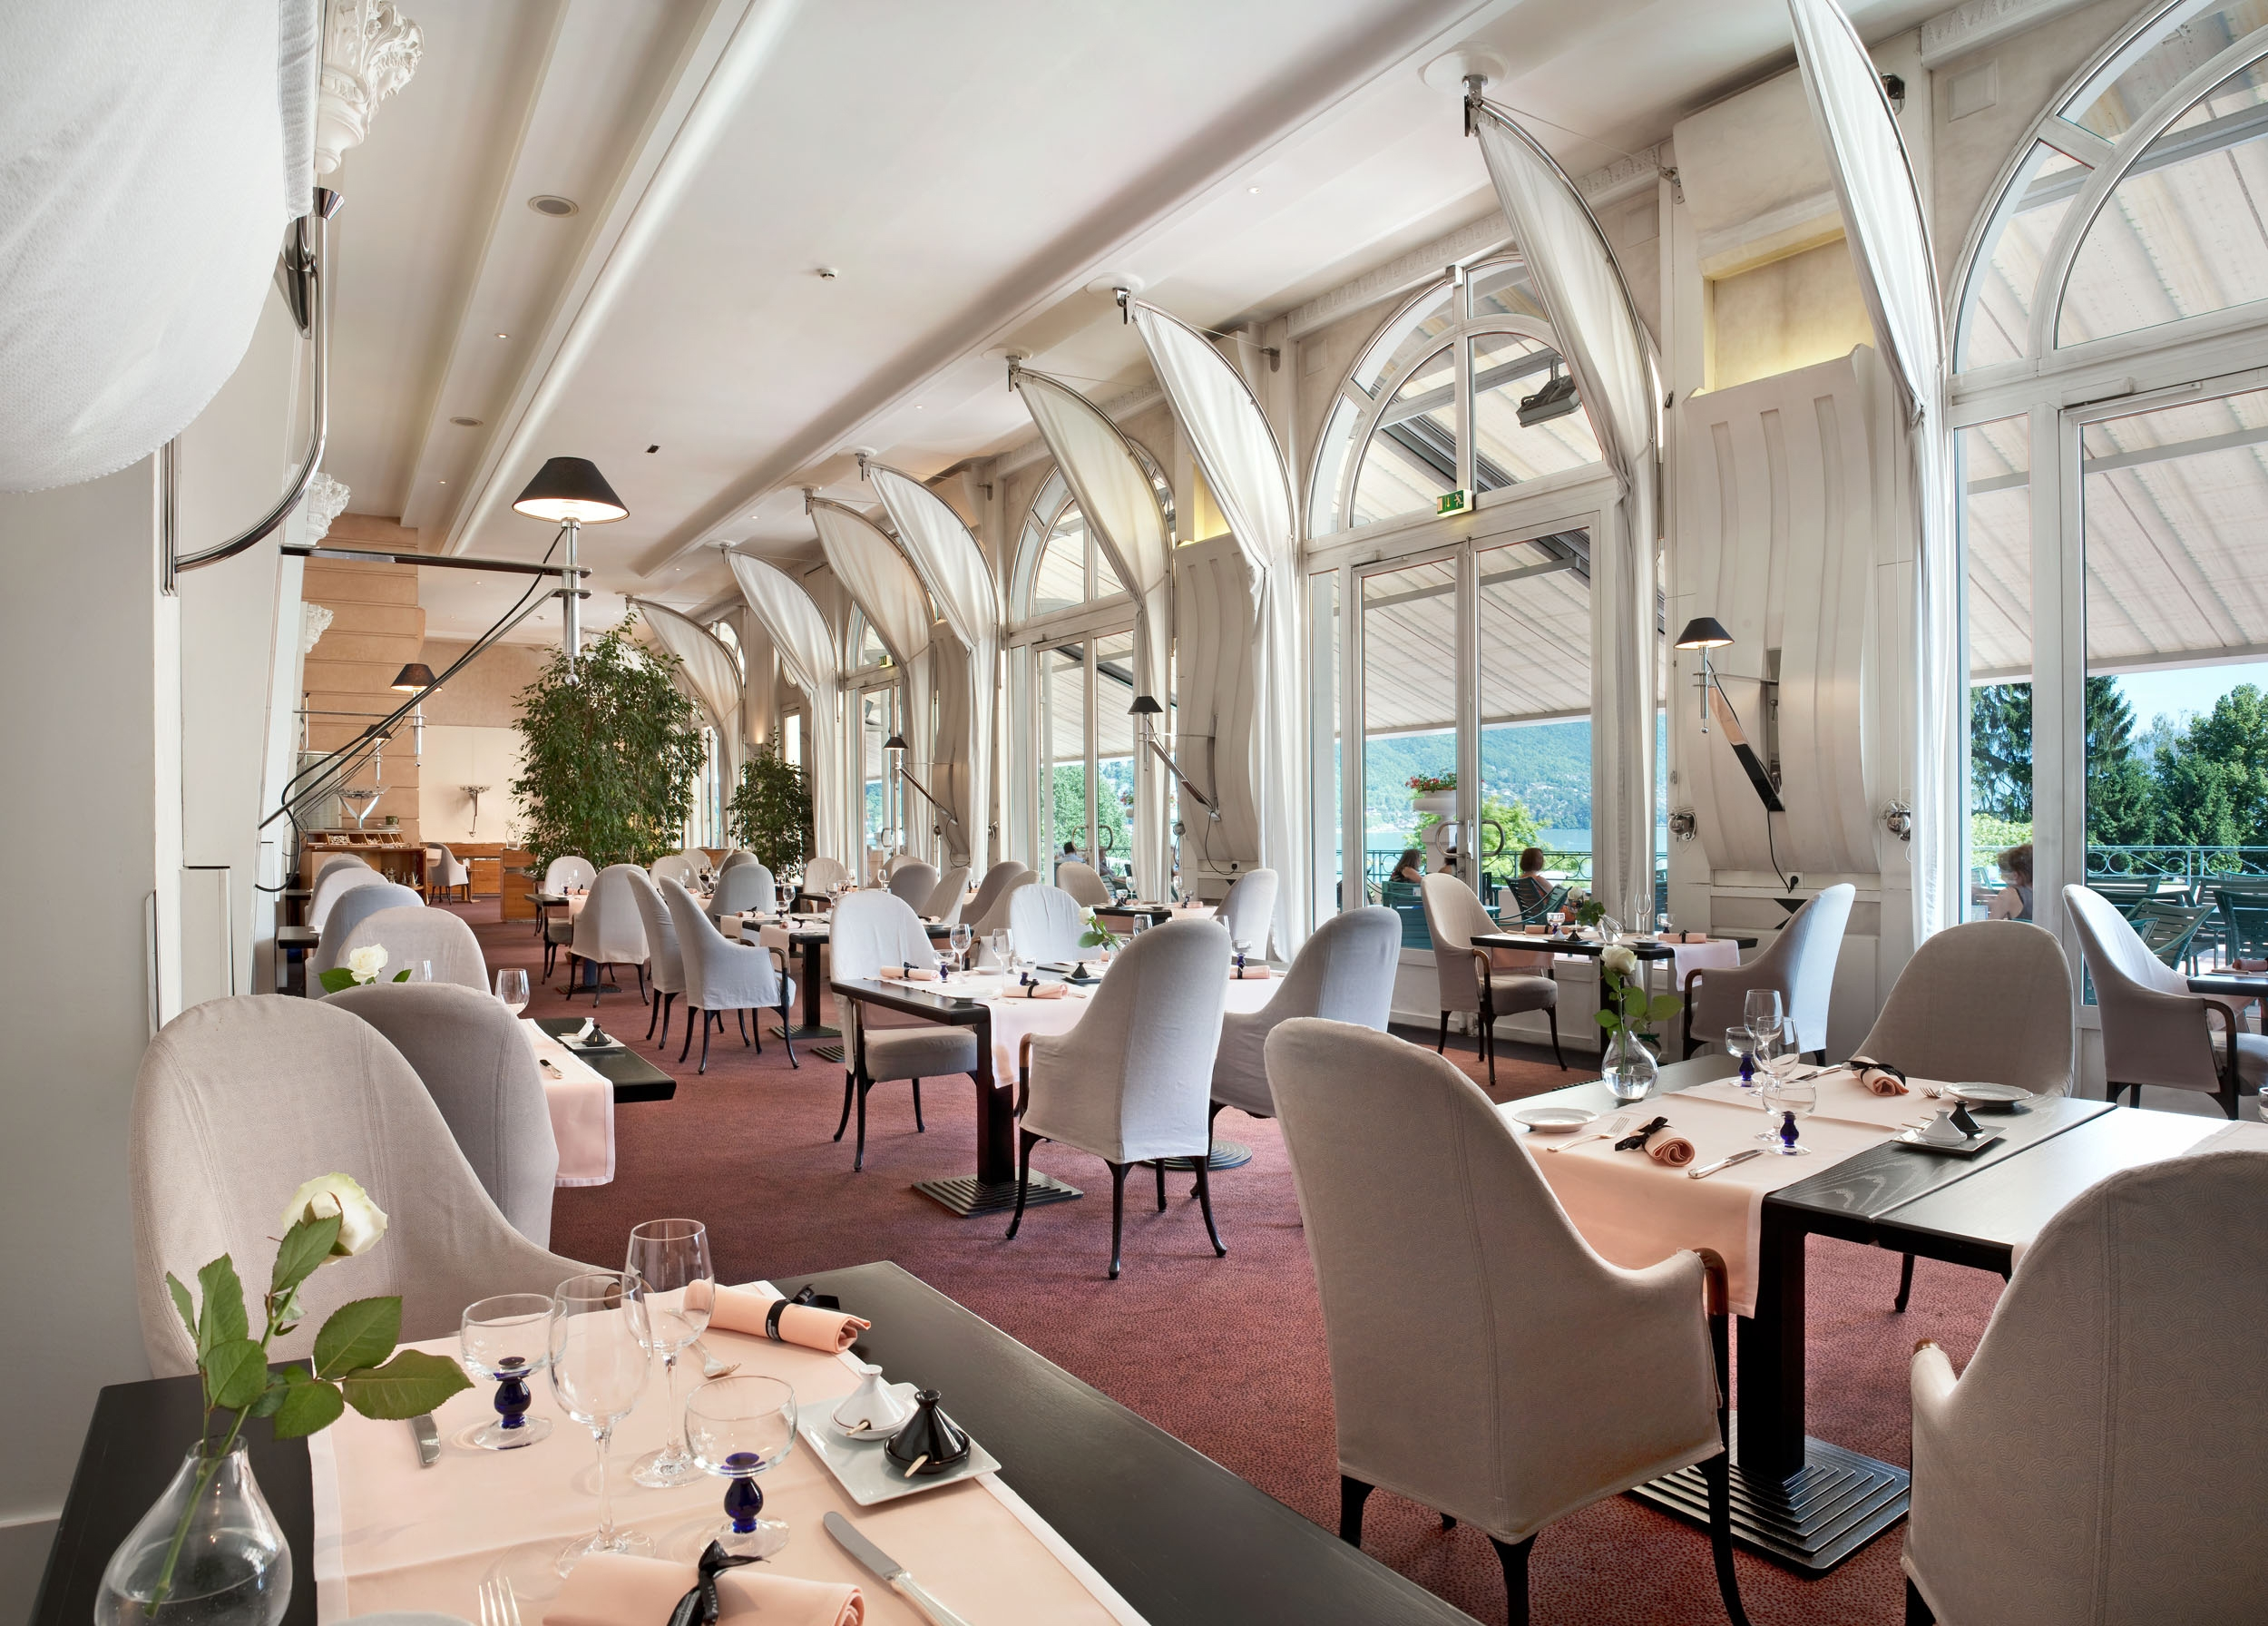 Imperial Palace, Annecy (B&B hotel) - Restaurant